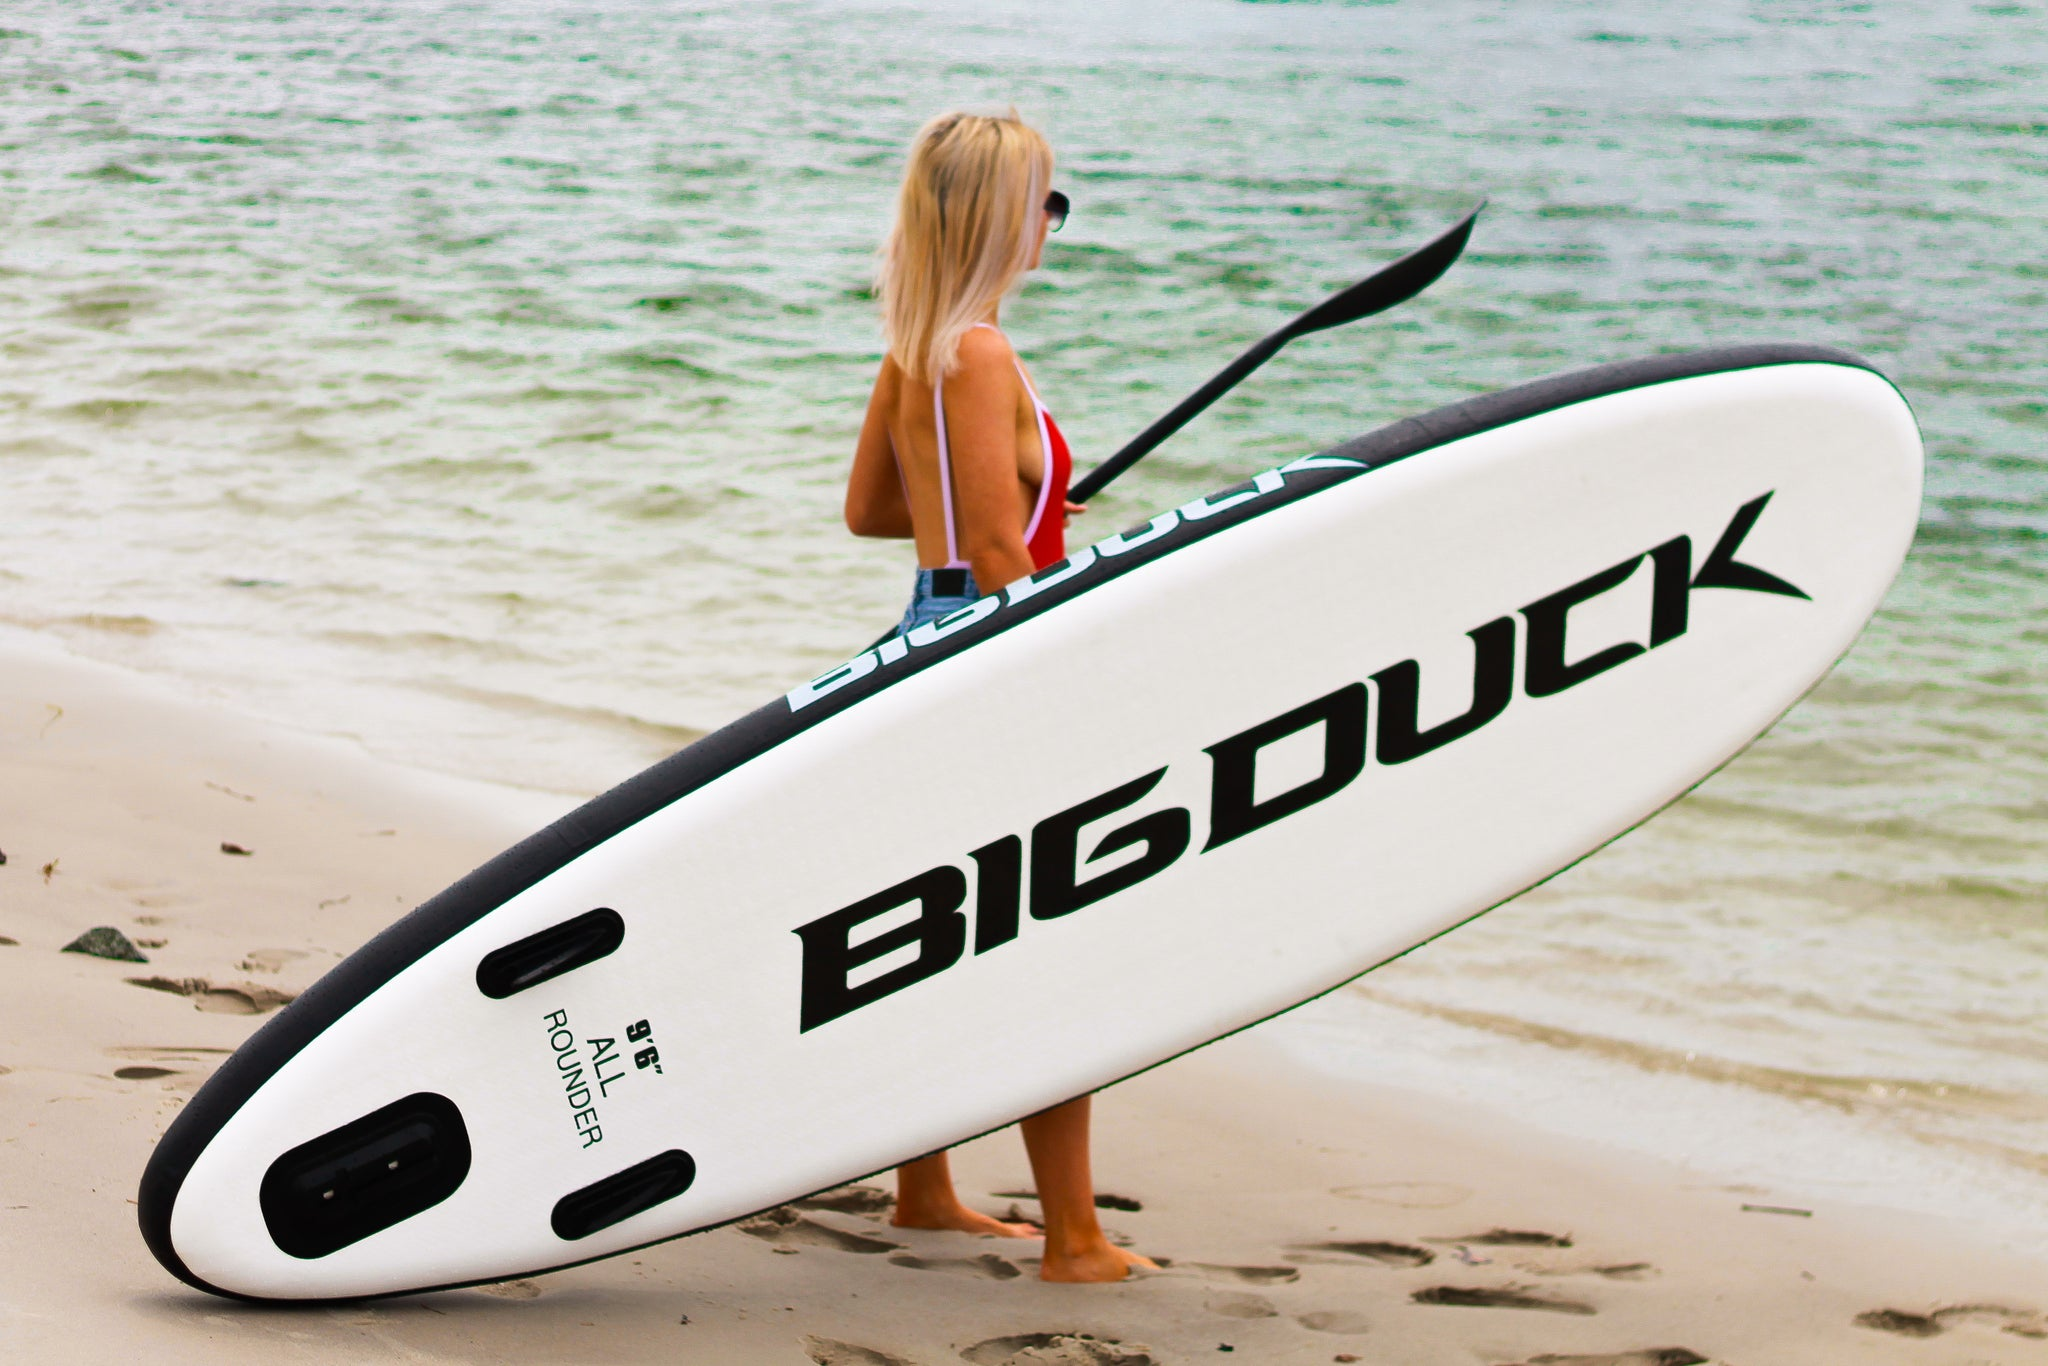 Affordable, high quality and simply to use inflatable water craft for family fun and weekend adventures. Stand Up Paddle Boards, Dinghies and Kayaks plus all the spares and accessories you could ever need.